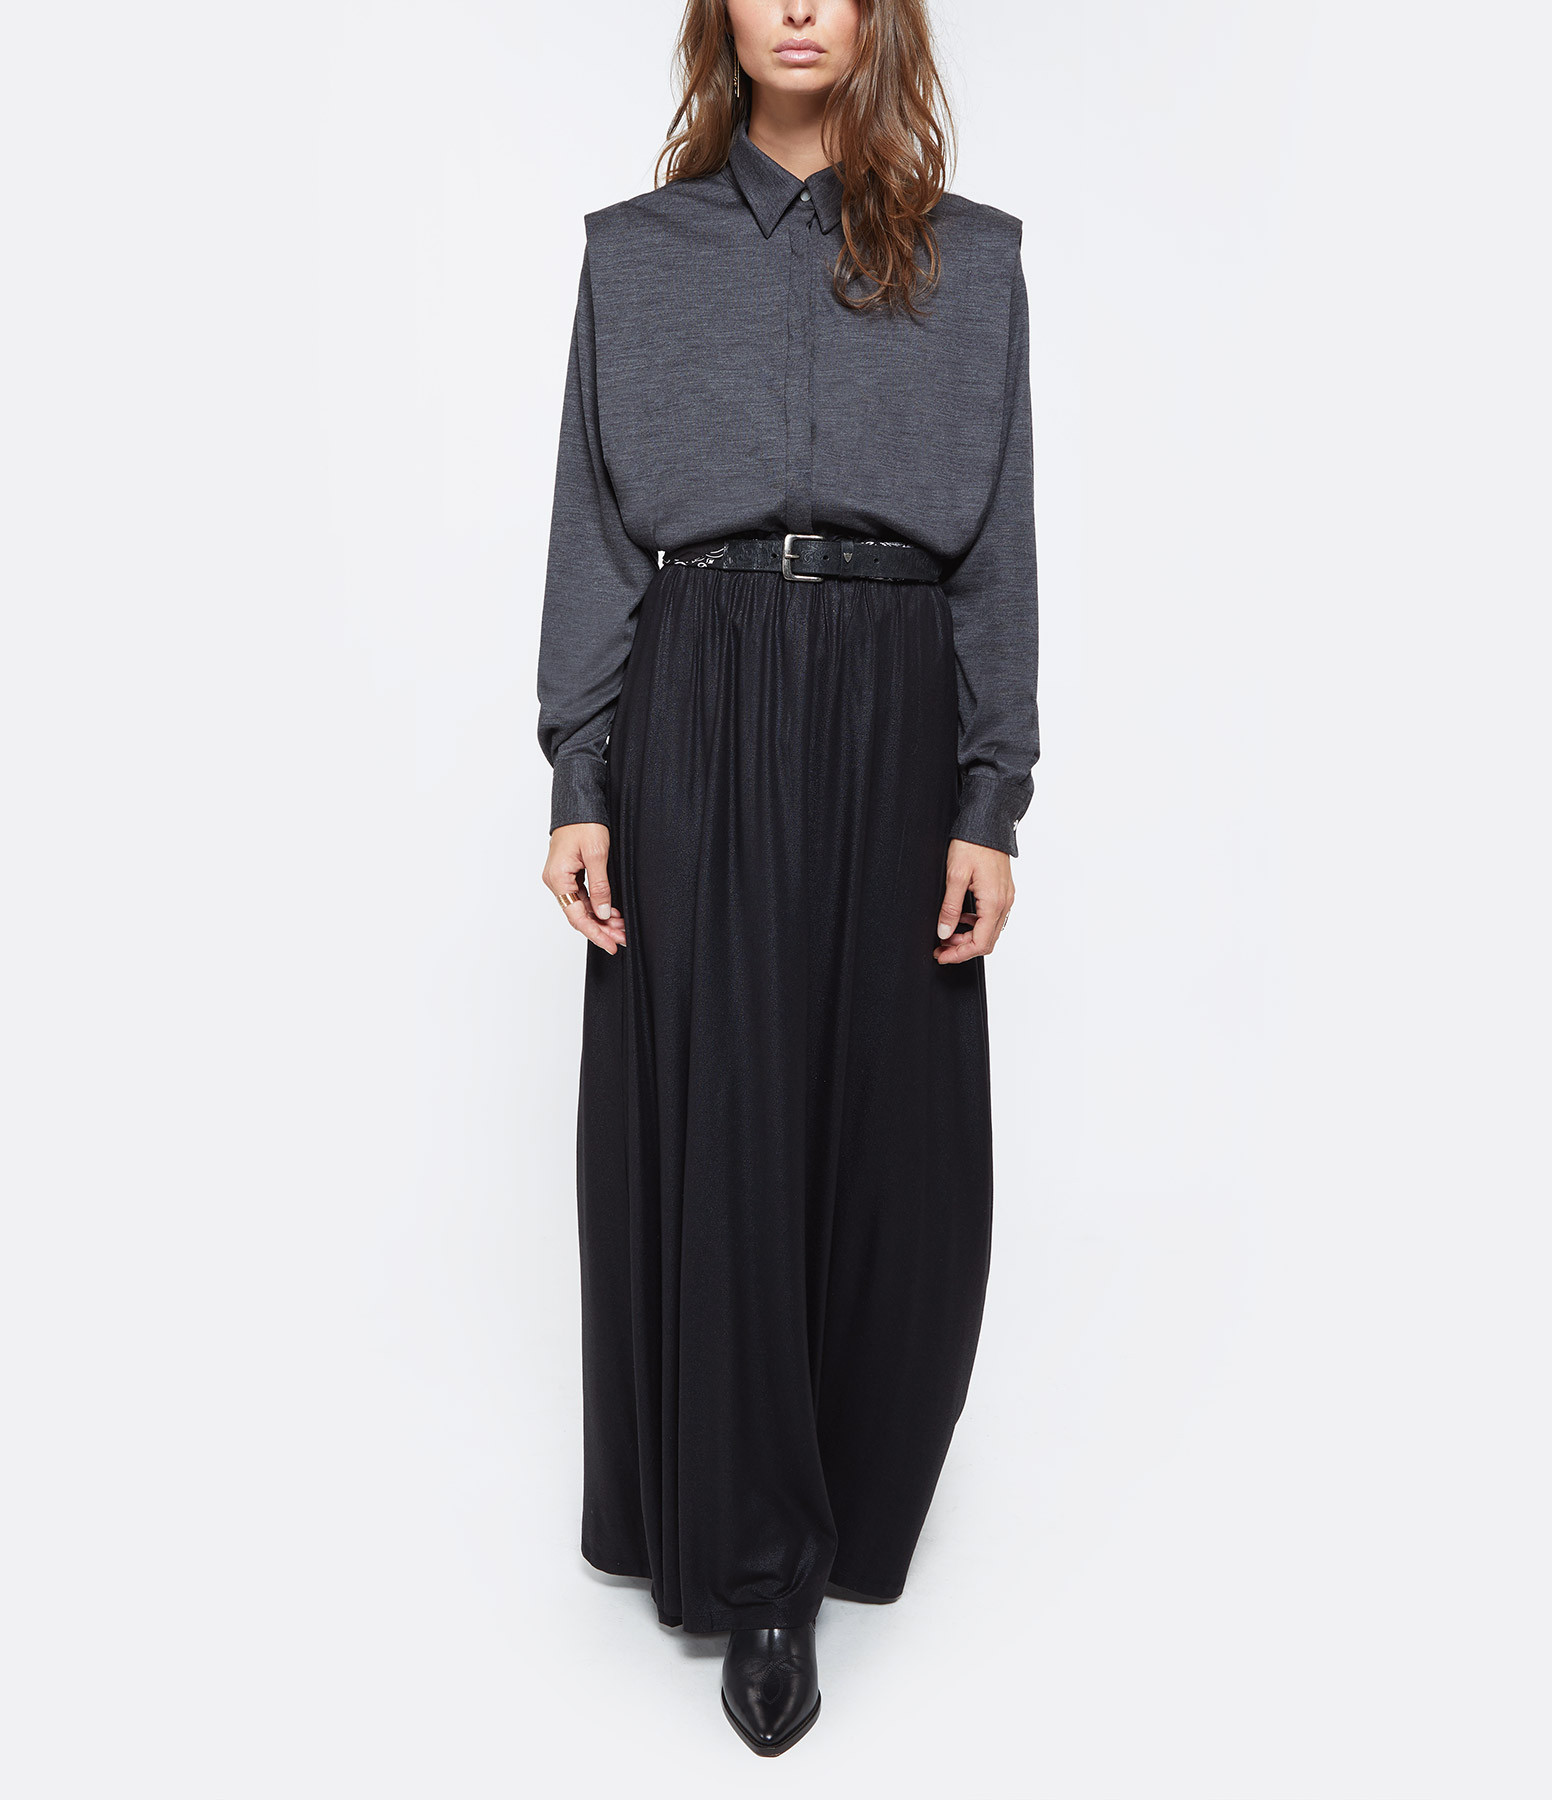 ISABEL MARANT - Top Galki Laine Anthracite